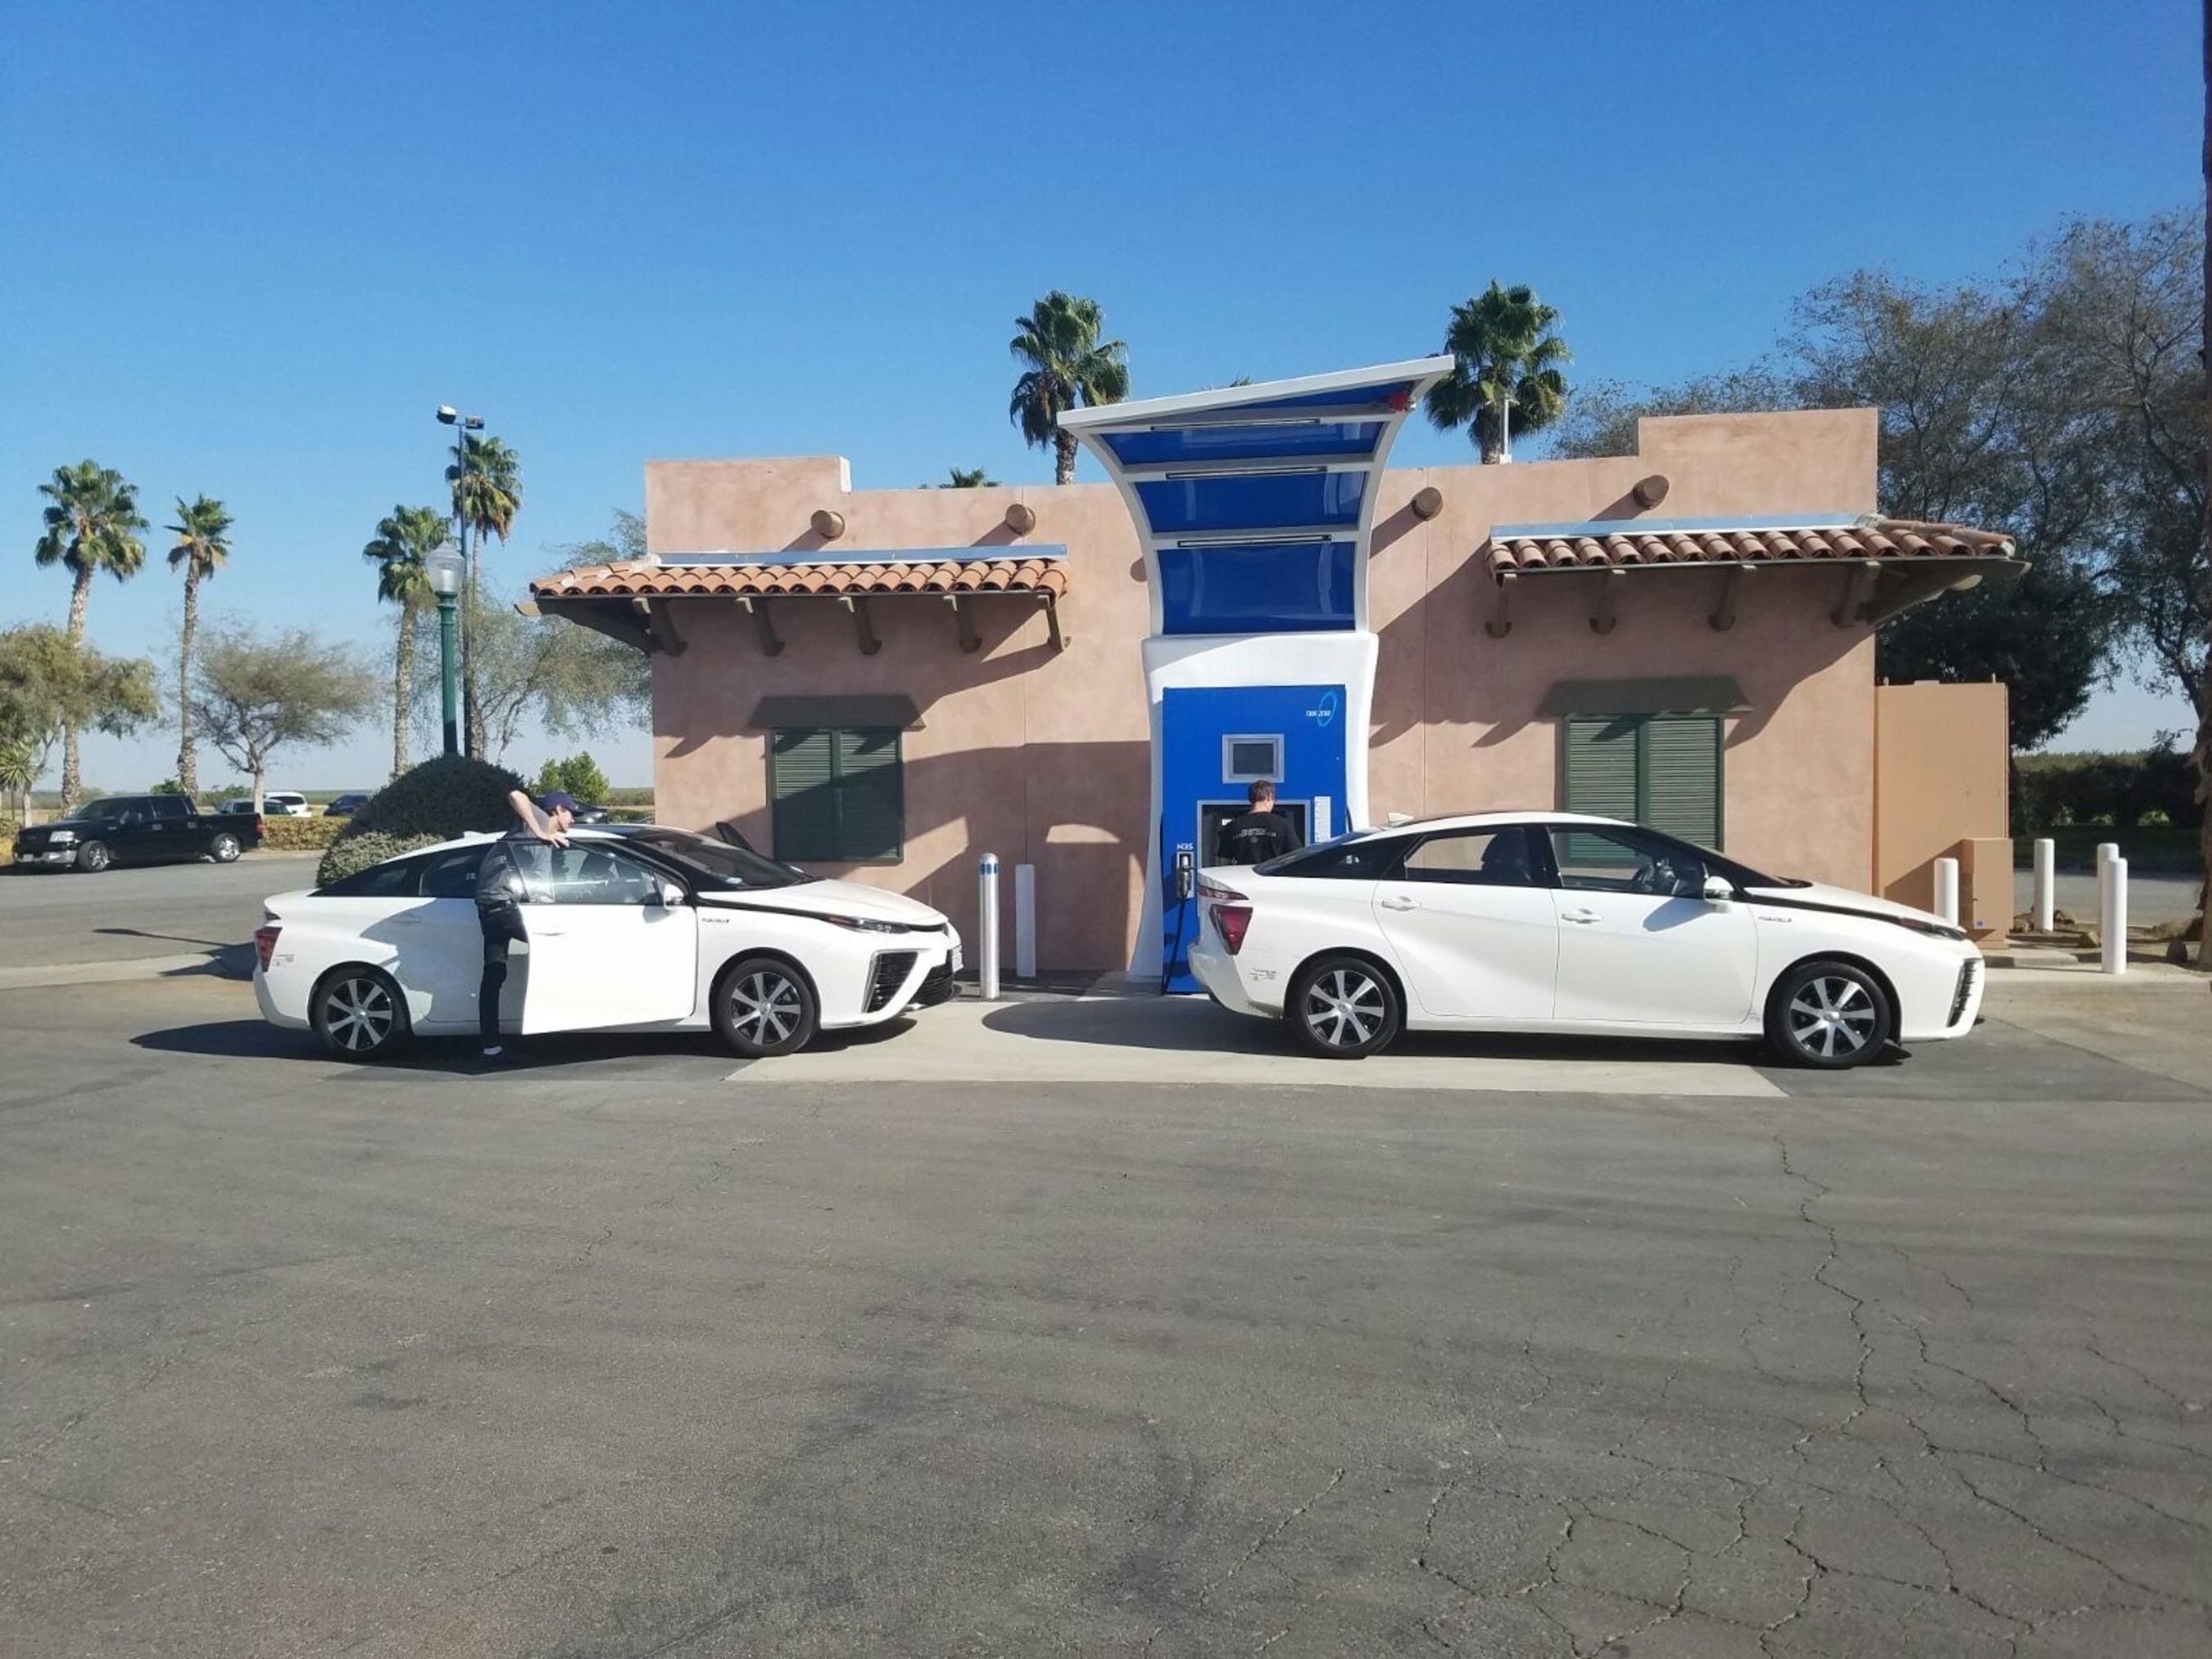 A pair of Toyota Mirai electric fuel-cell cars at the True Zero hydrogen-charge station at Harris Ranch, Coalinga, Calif. True Zero's hydrogen has powered FCEVs to more than two million emission-free miles.